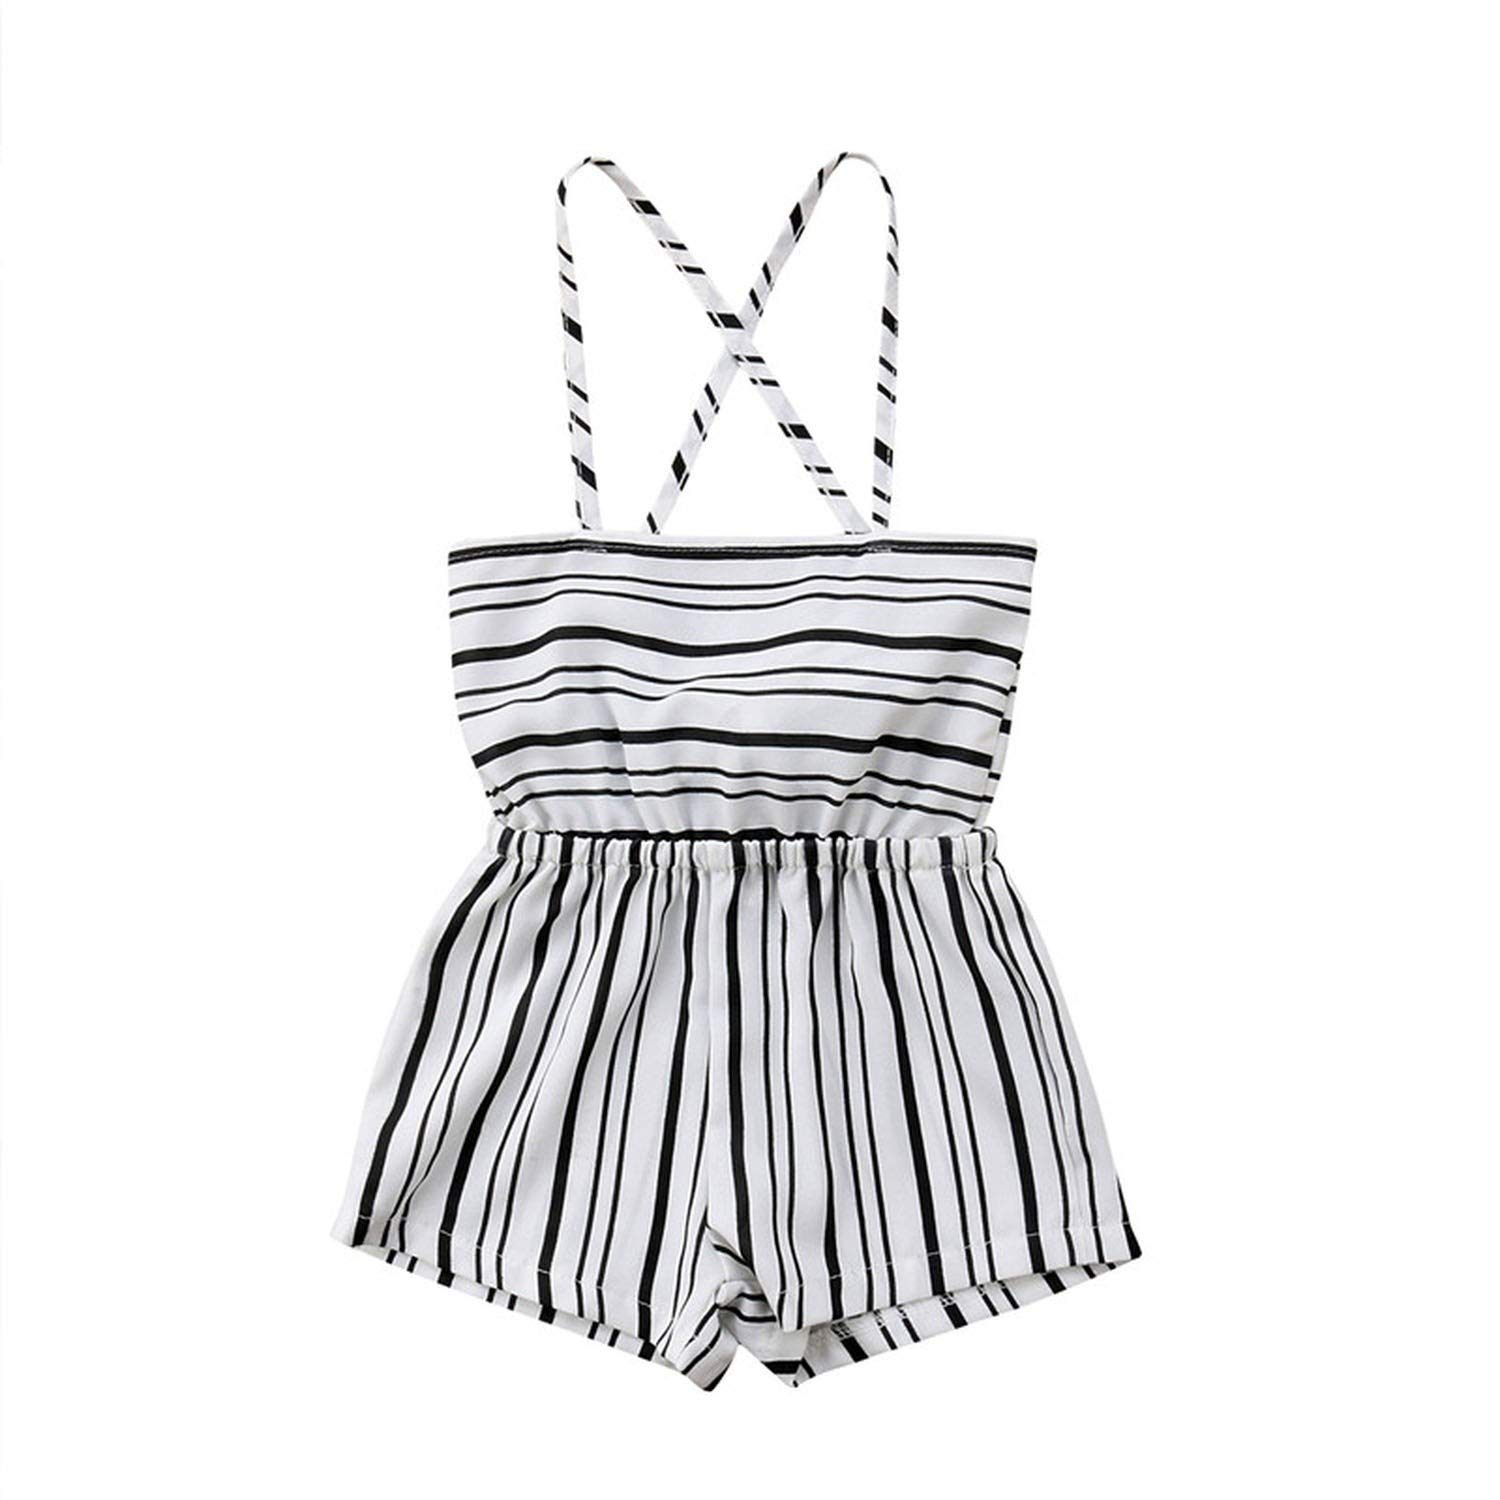 V-A-O-L Boho Style Striped Sleeveless Romper Suspender Jumpsuit Outfits